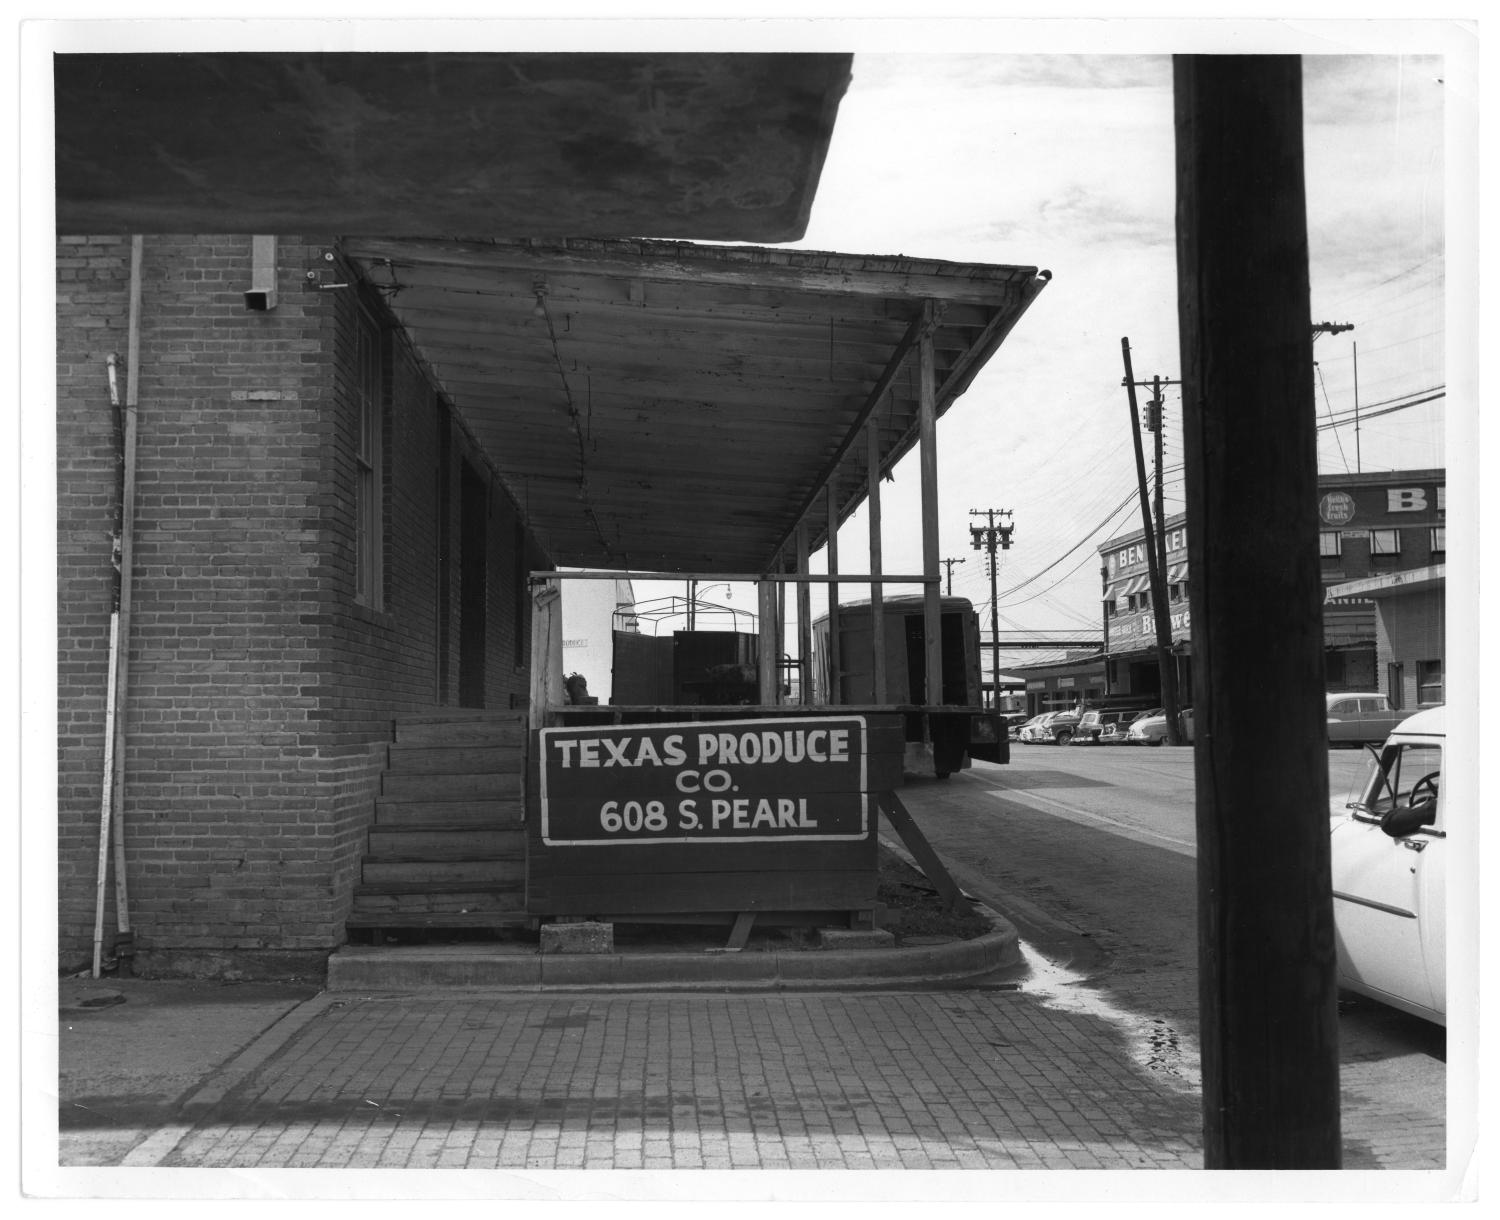 [Texas Produce Co. Storefront]                                                                                                      [Sequence #]: 1 of 2